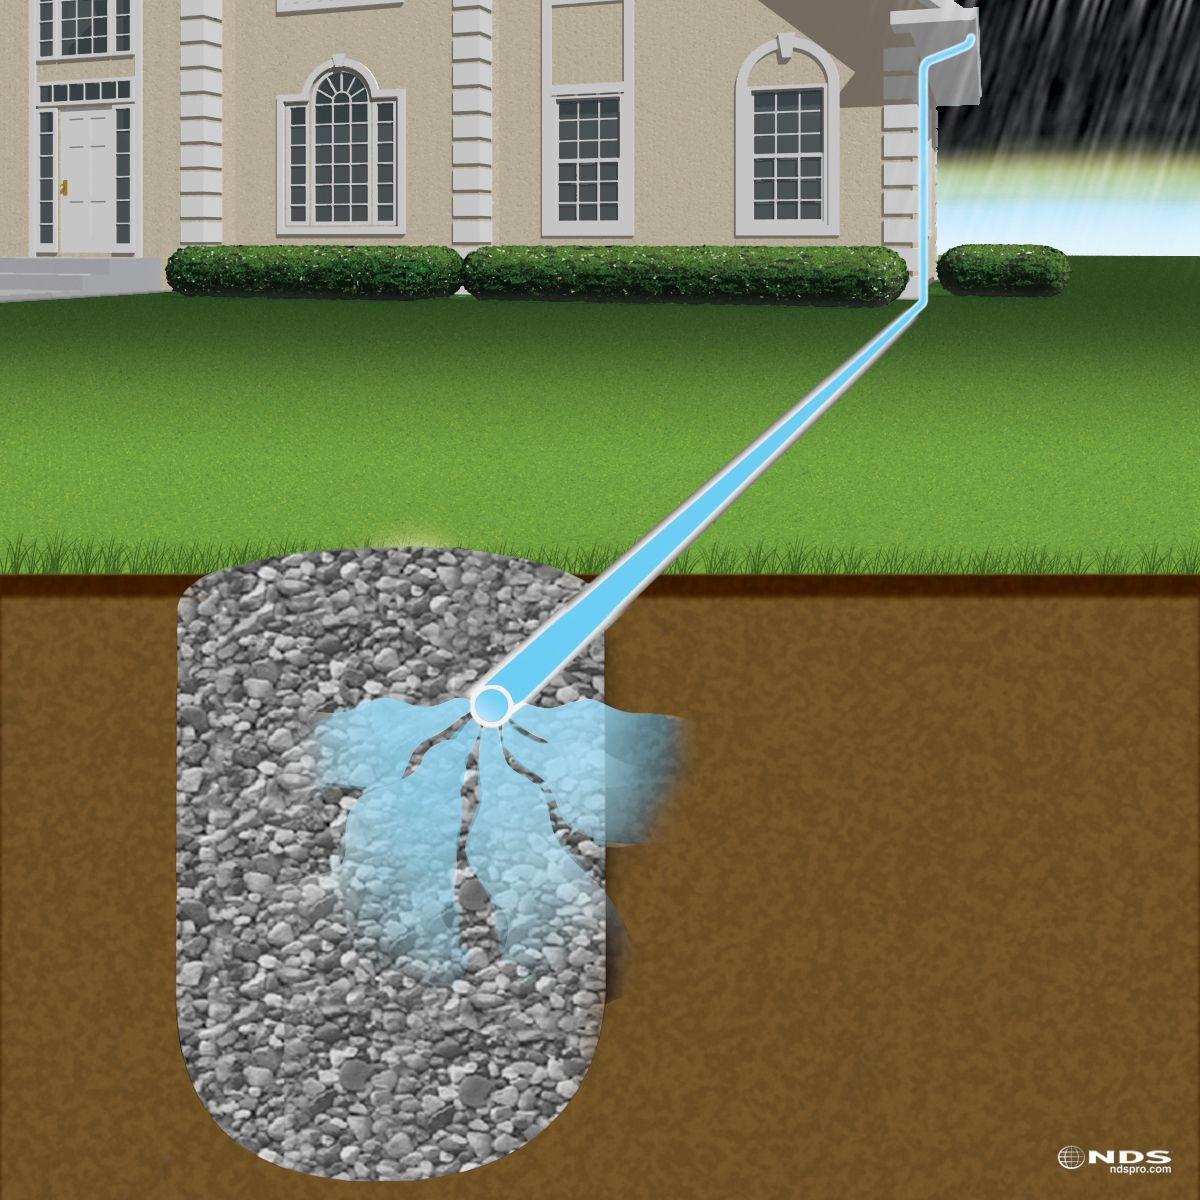 water in yard water pools in yard creating muddy areas and